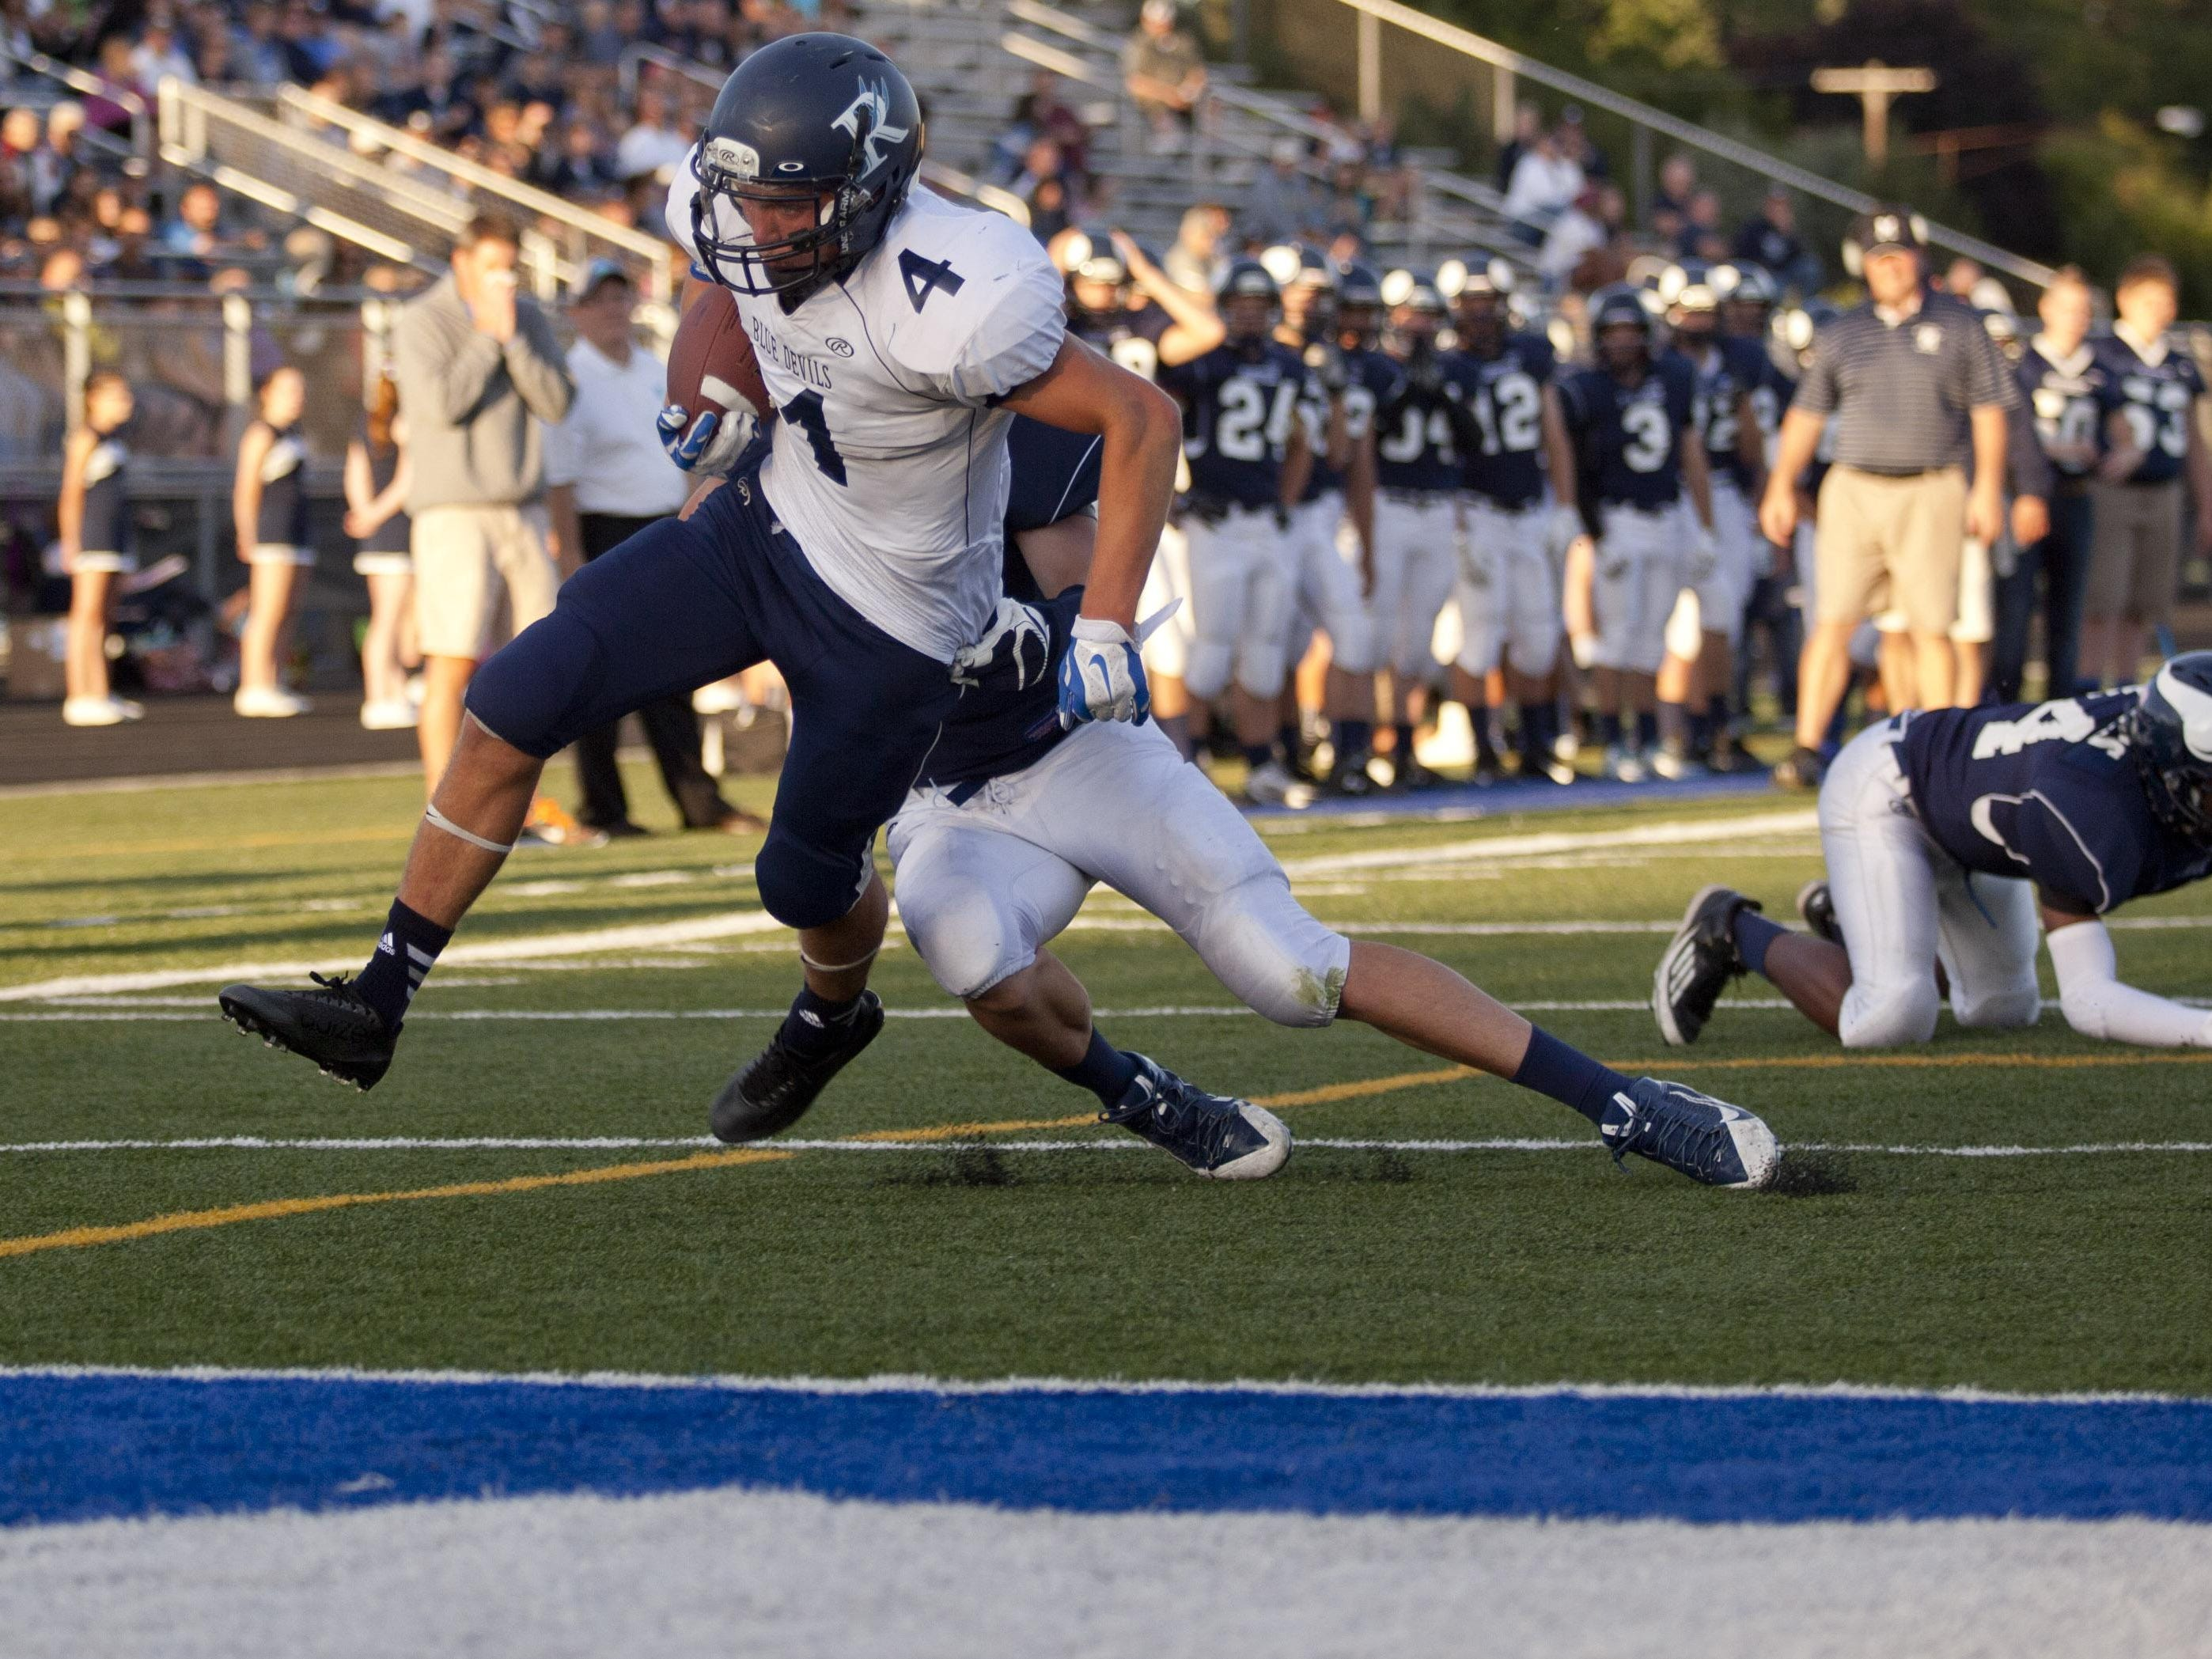 Richmond's Devin Skatzka was a First-Team All-State selection in football.